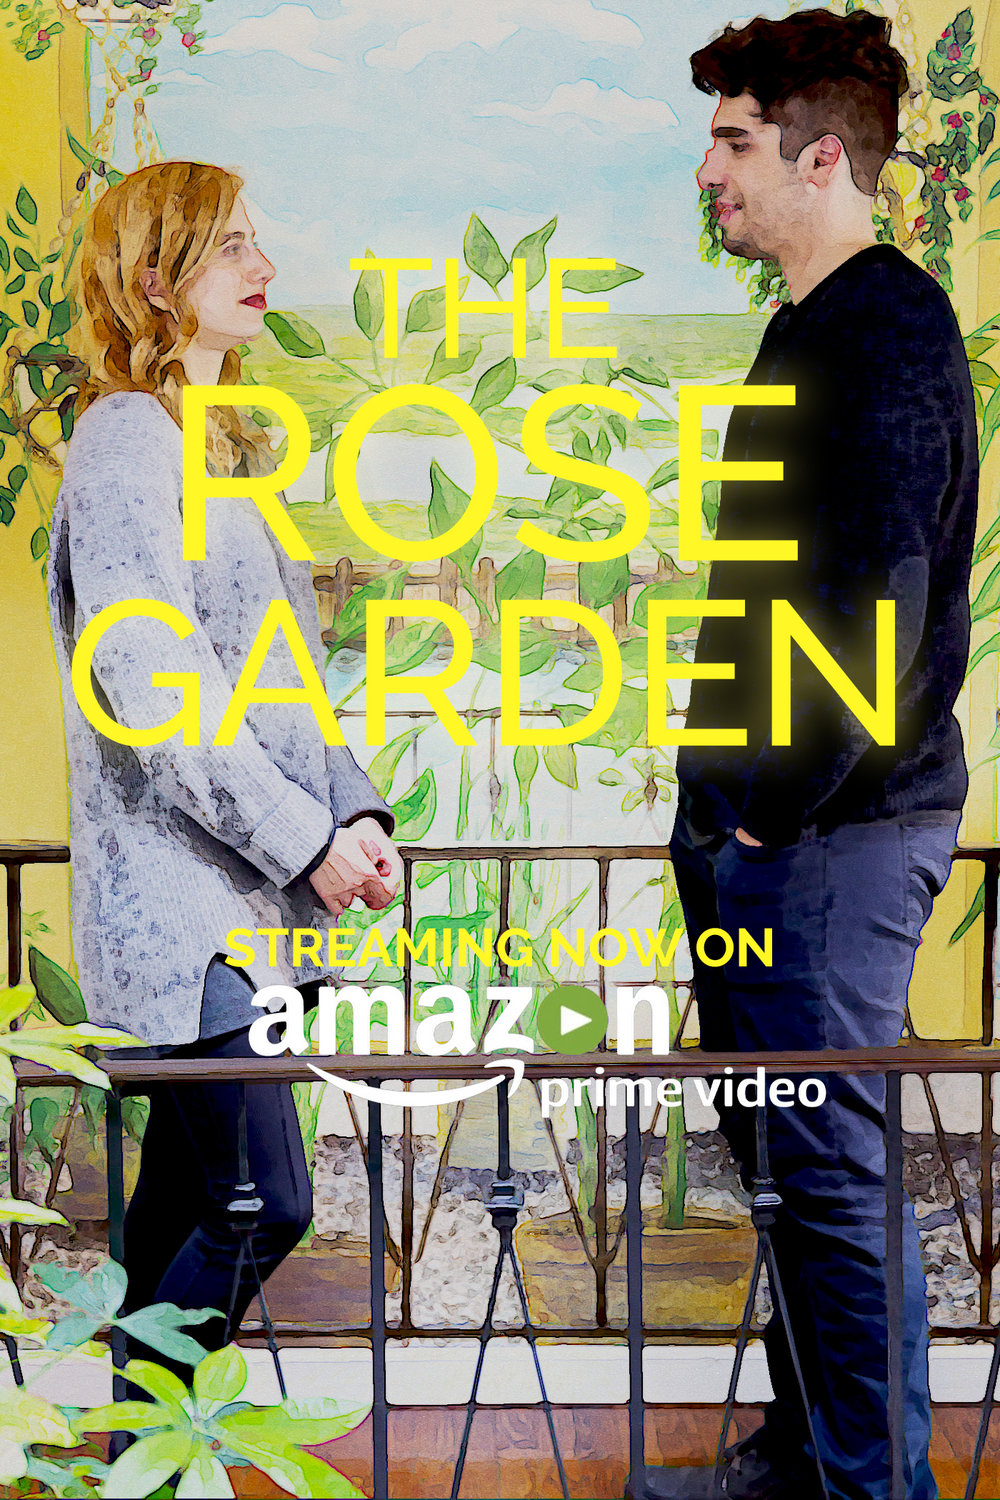 The Rose Garden (2018) - A writer revisits the past while on a personal trip.Starring: David Joseph Volino, Victoria RatermanisDirector, Editor, Colorist, Co-Writer: Karl FernandezCo-writer/Producer: David Joseph VolinoDirector of Photography: Jordan Alazruei Assistant Director: Cecilia Potenza2nd AD: Marina GasparyanLine Producer: Sherine ToussaintSound Design: Giuseppe CappelloMakeup: Linah MunemAWARDS:-Audience Choice Award Best Short Film - Northeast Film Festival 2017-Best Actress in a Short - Northeast Film Festival 2017-Grand Jury Award Best Screenplay (Short Film) - Playhouse West Philadelphia Film Festival 2017-Grand Jury Award Best Actor in a Short Film - Playhouse West Philadelphia Film Festival 2017-Audience Choice Best Actor in a Short Film - Playhouse West Philadelphia Film Festival 2017